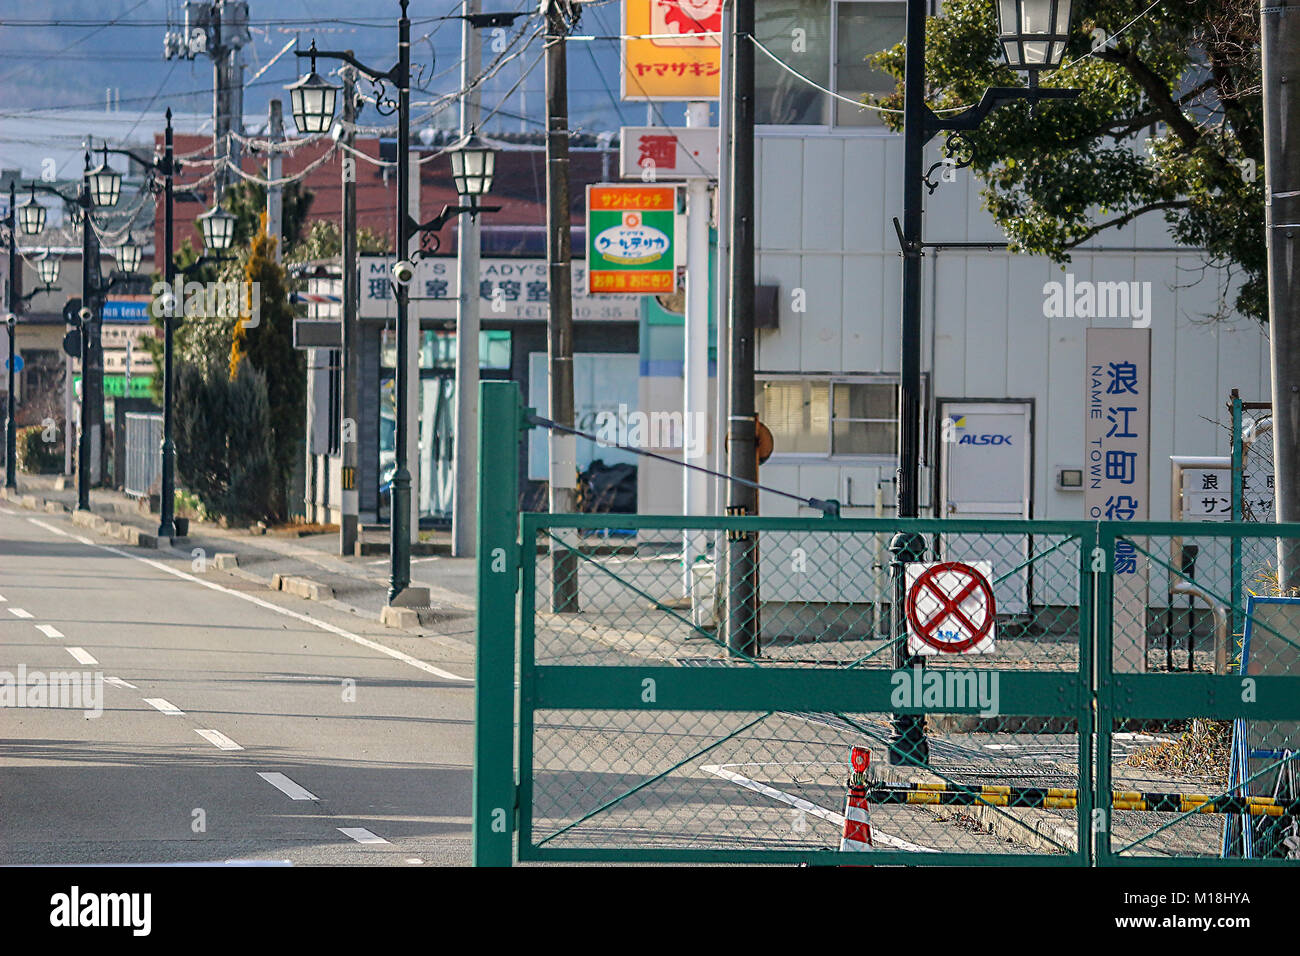 (16, January, 2016. Namie, Fukushima, Japan) A main street of Namie Town in front of the Town center. The entire - Stock Image